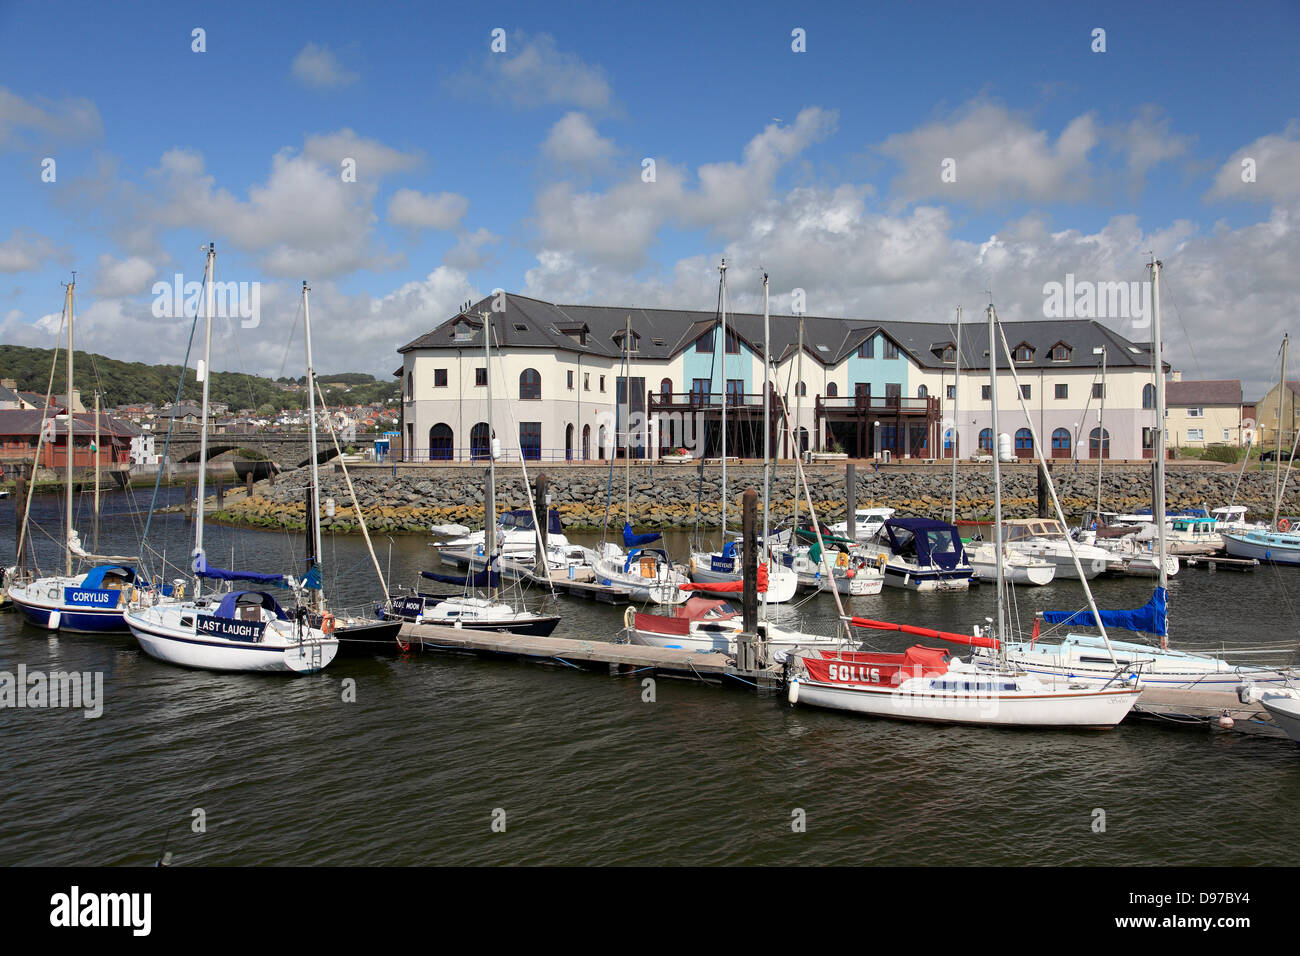 The Marina at Aberystwyth with the river Rheidol and Trefechan bridge to the left - Stock Image